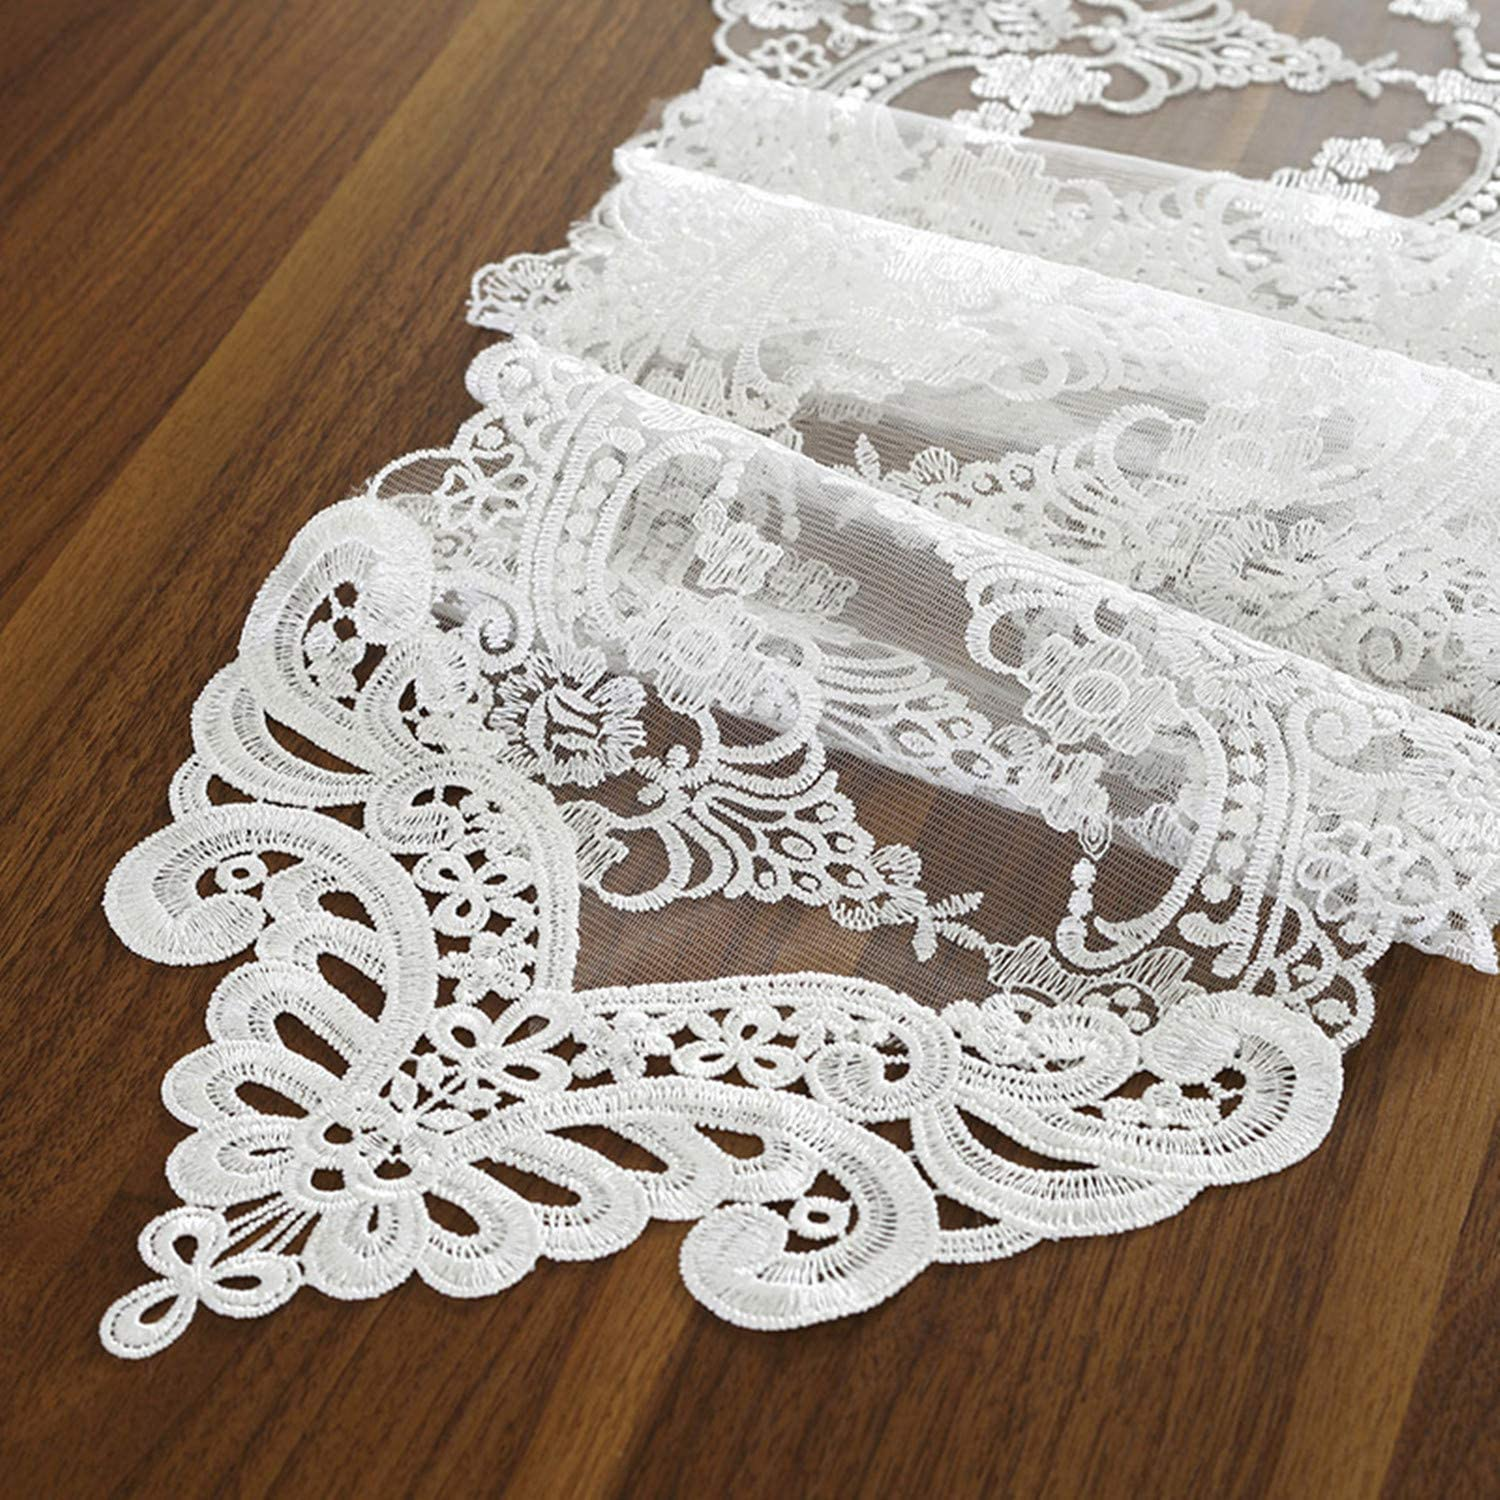 Bettery Home Lace Table Runner and Dresser Scarf Embroidered Flower White Table Runner 10 x 28 Inches Wedding Party Baby Shower Dining Table Decor